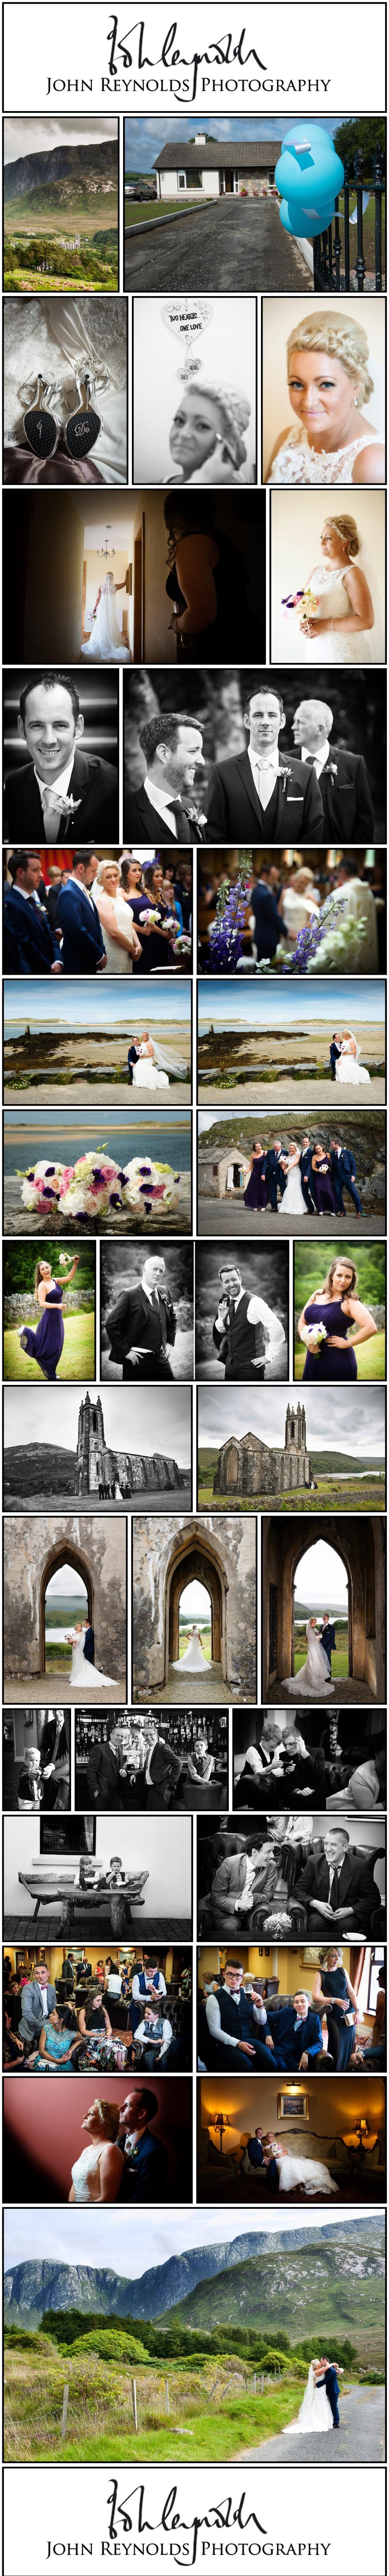 Blog Collage-Tracy & Michael